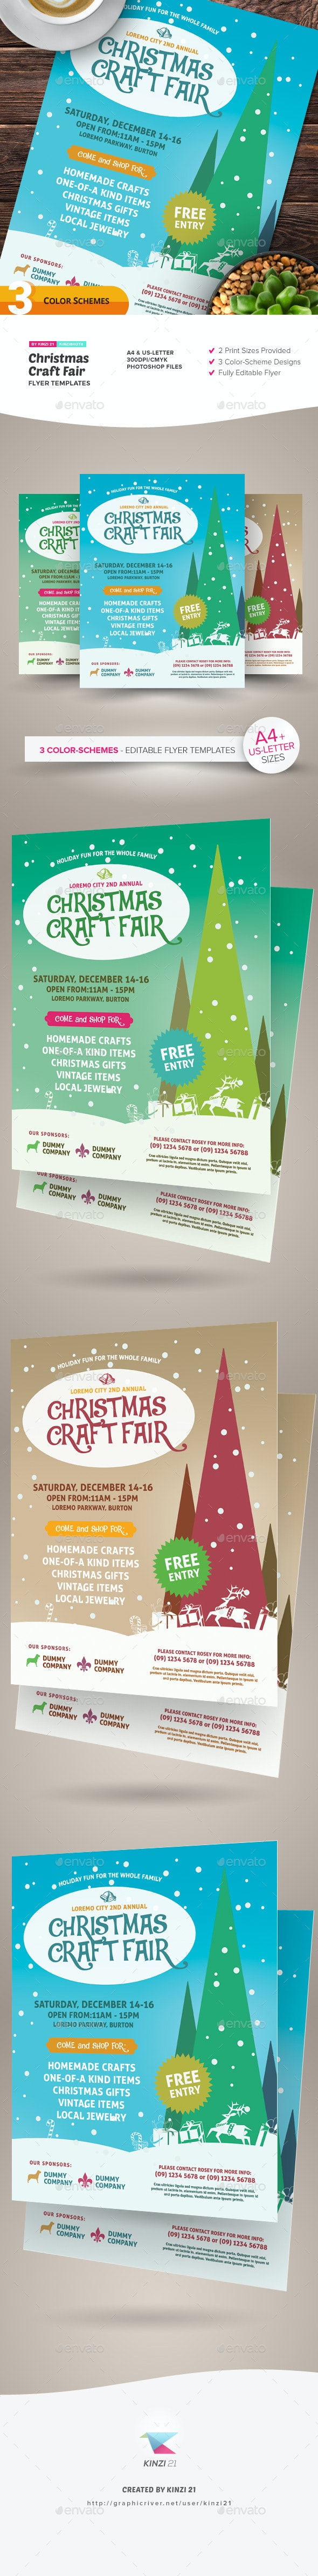 Christmas Craft Fair Flyer Templates By Kinzishots Graphicriver